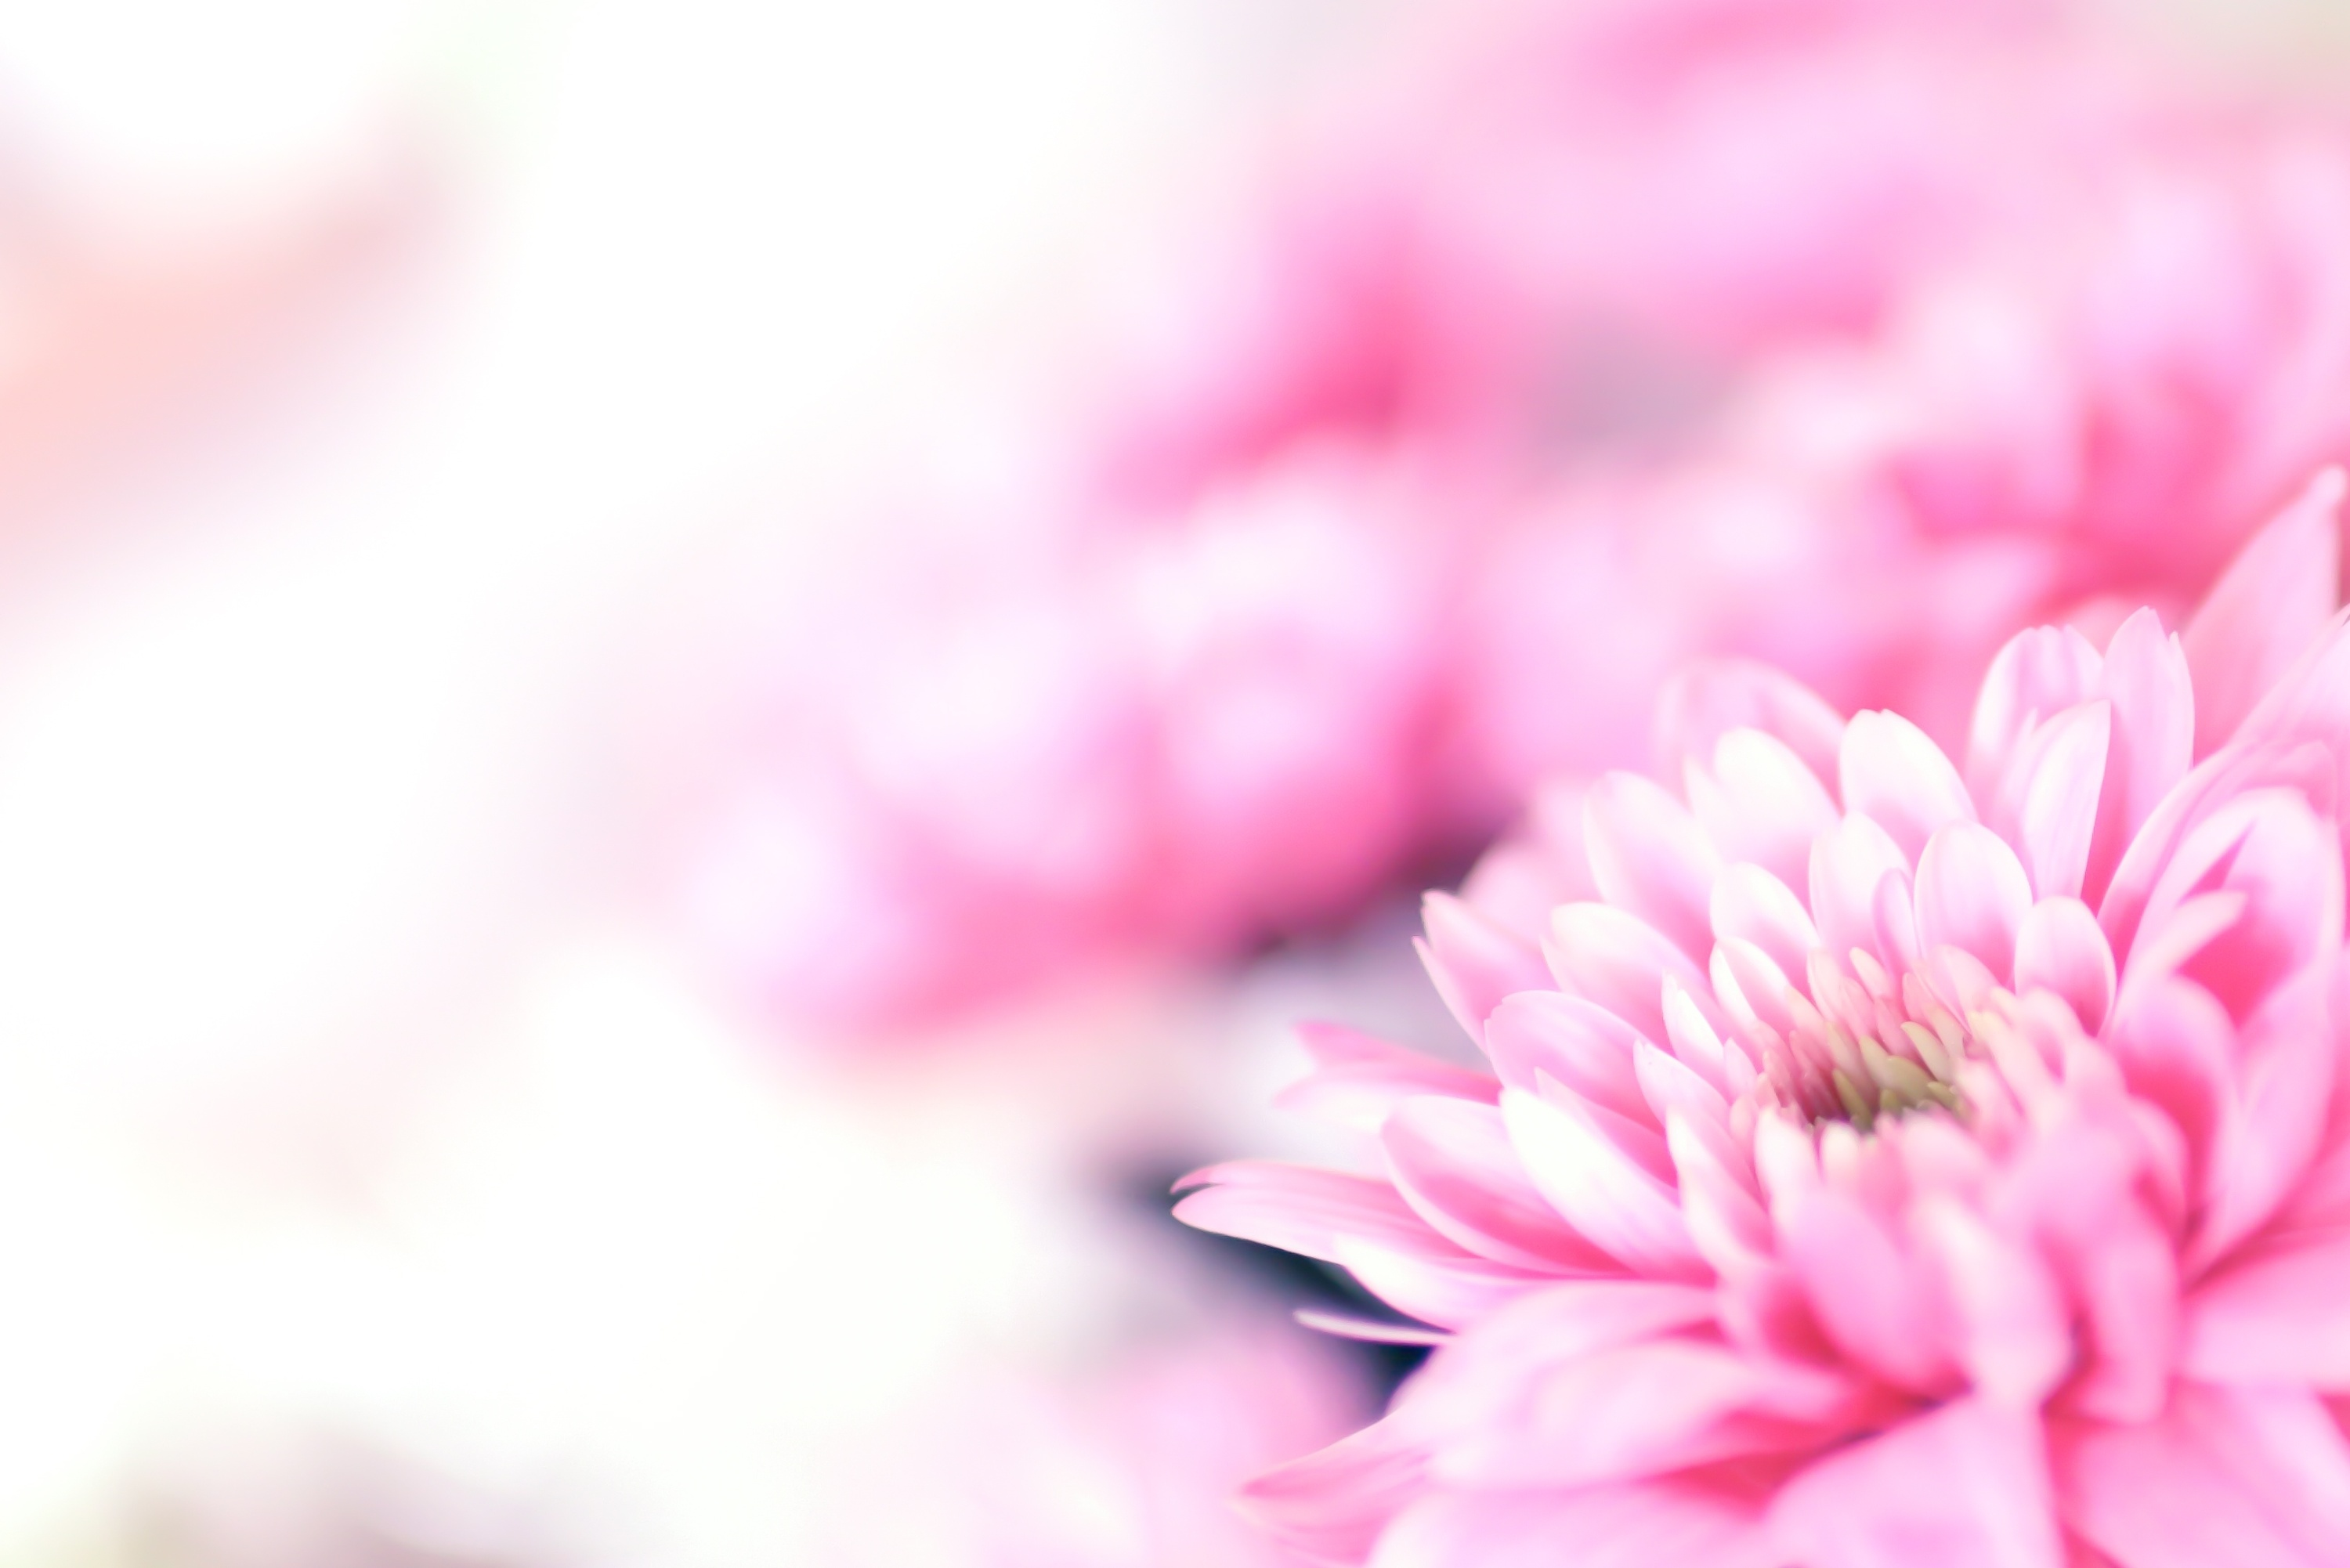 Hd Wallpaper Pack Pretty Pink Chrysantum Flower Background Websites With A